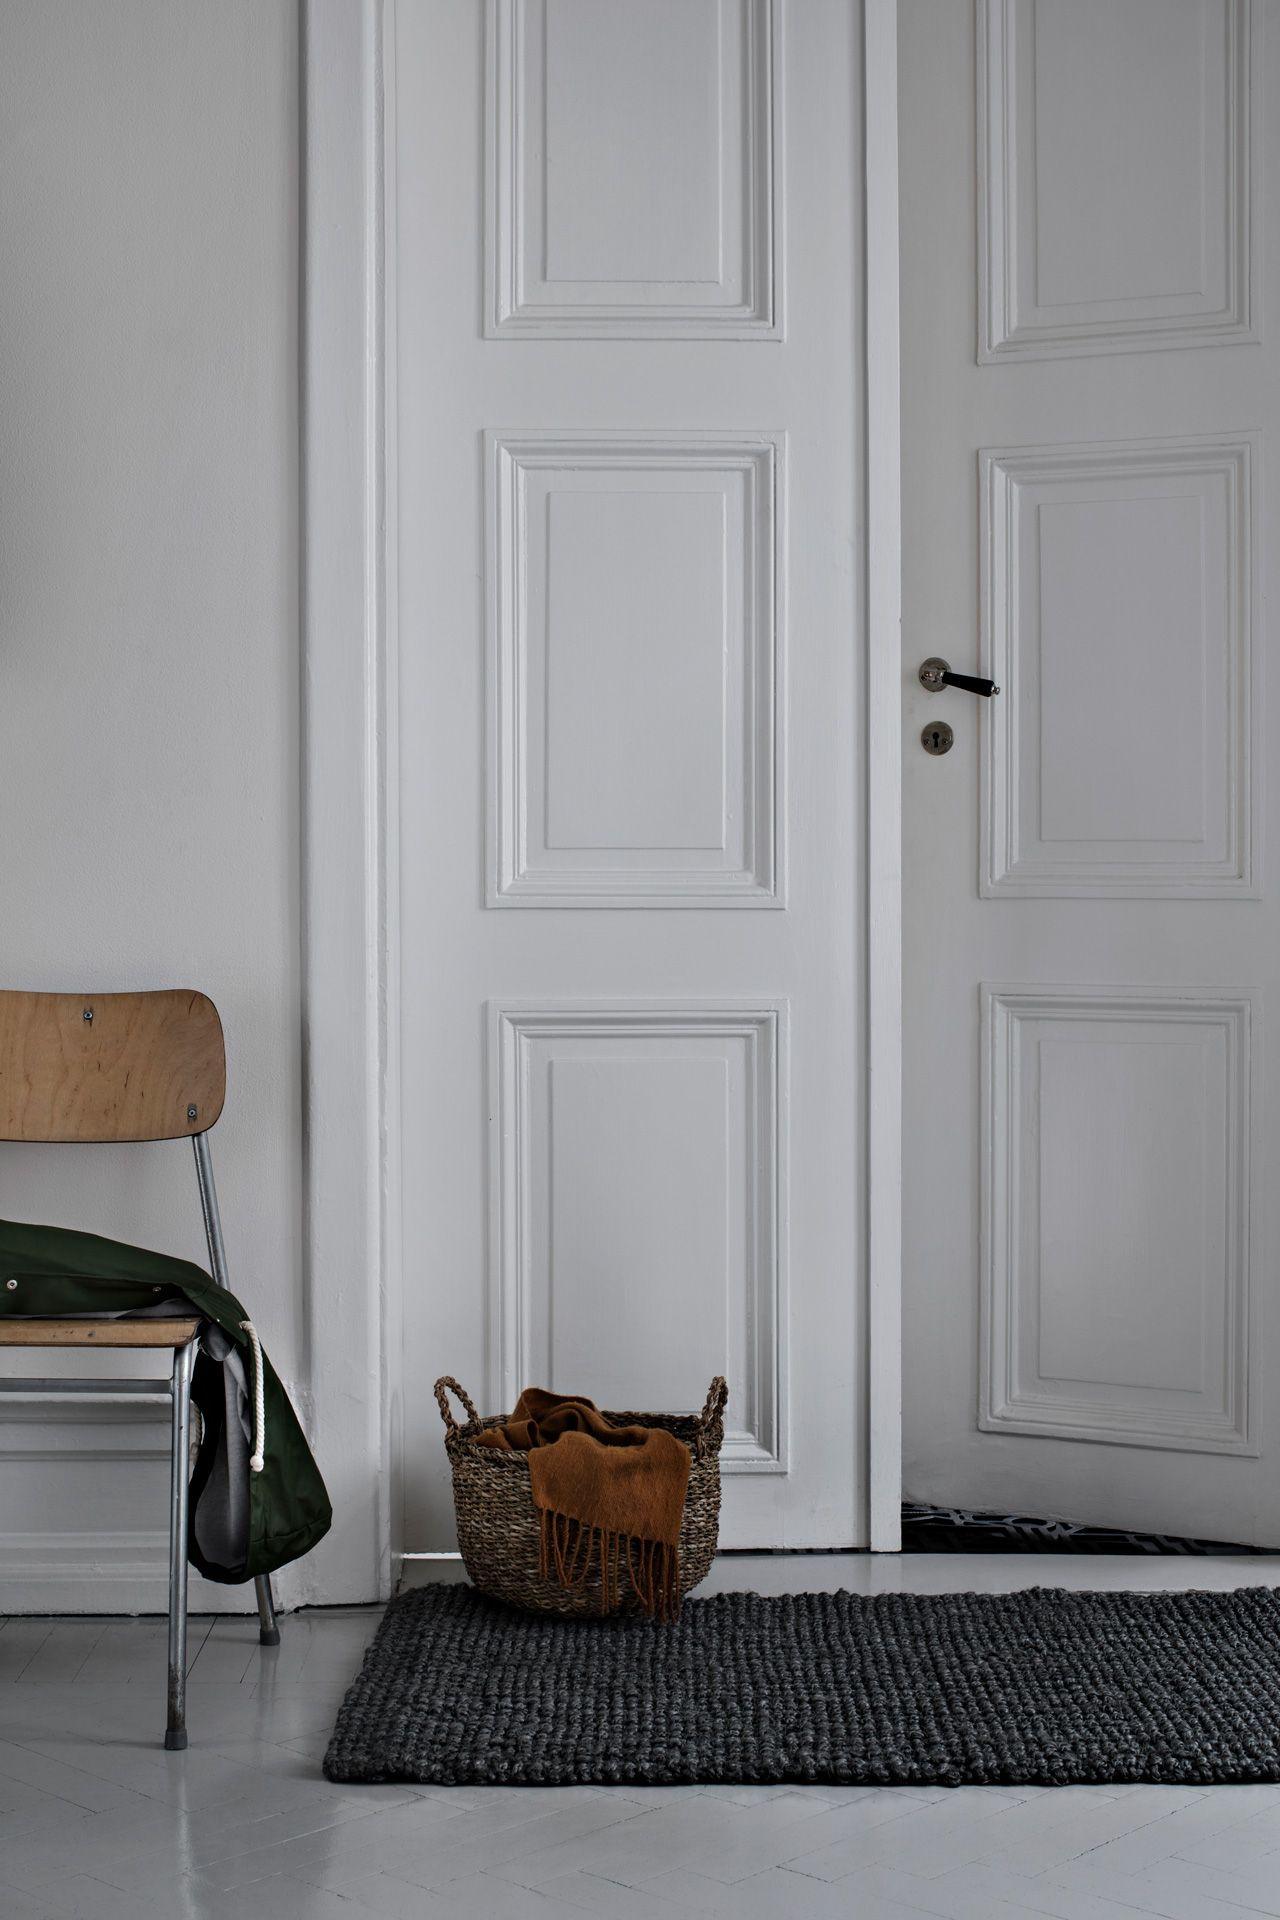 Dixie Sweden A W17 Scandinavian Interior Design Art Direction And Concept By Aoki Photography By Al Interiorer Ideer For Heminredning Design Inredning